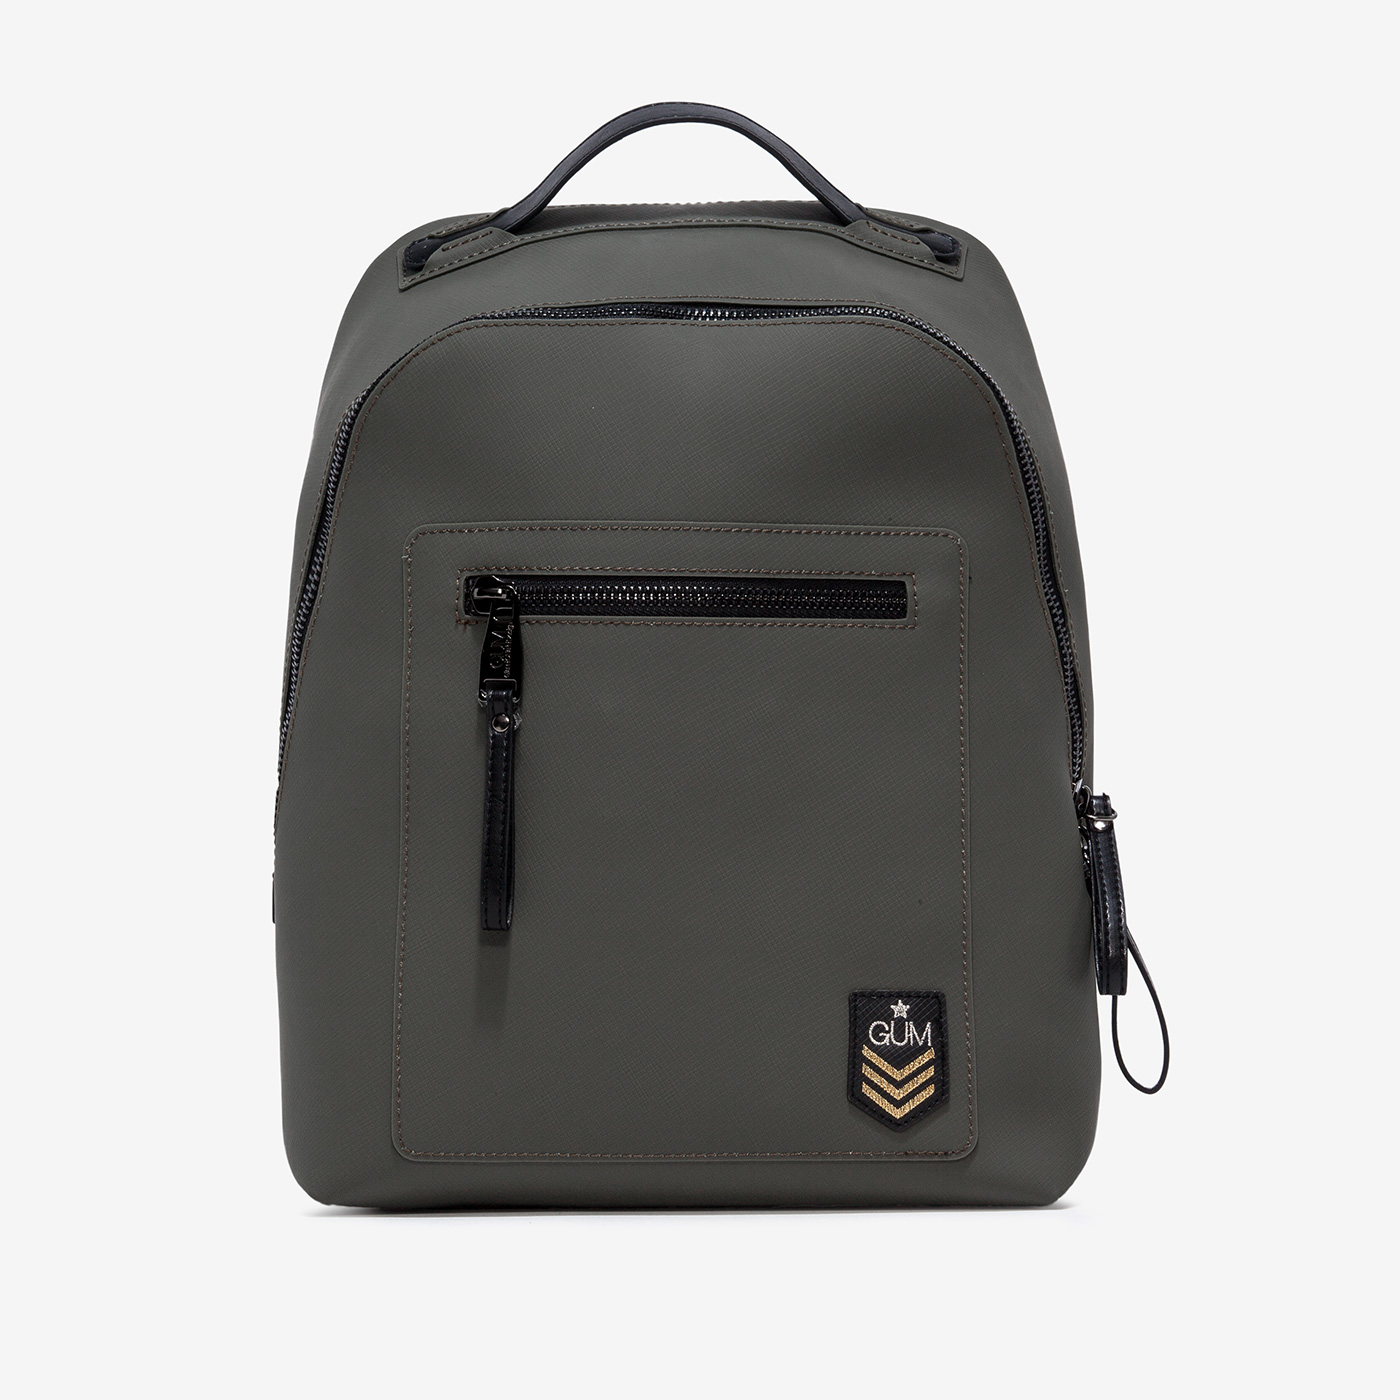 GUM: MILITARY PATTERN BACKPACK